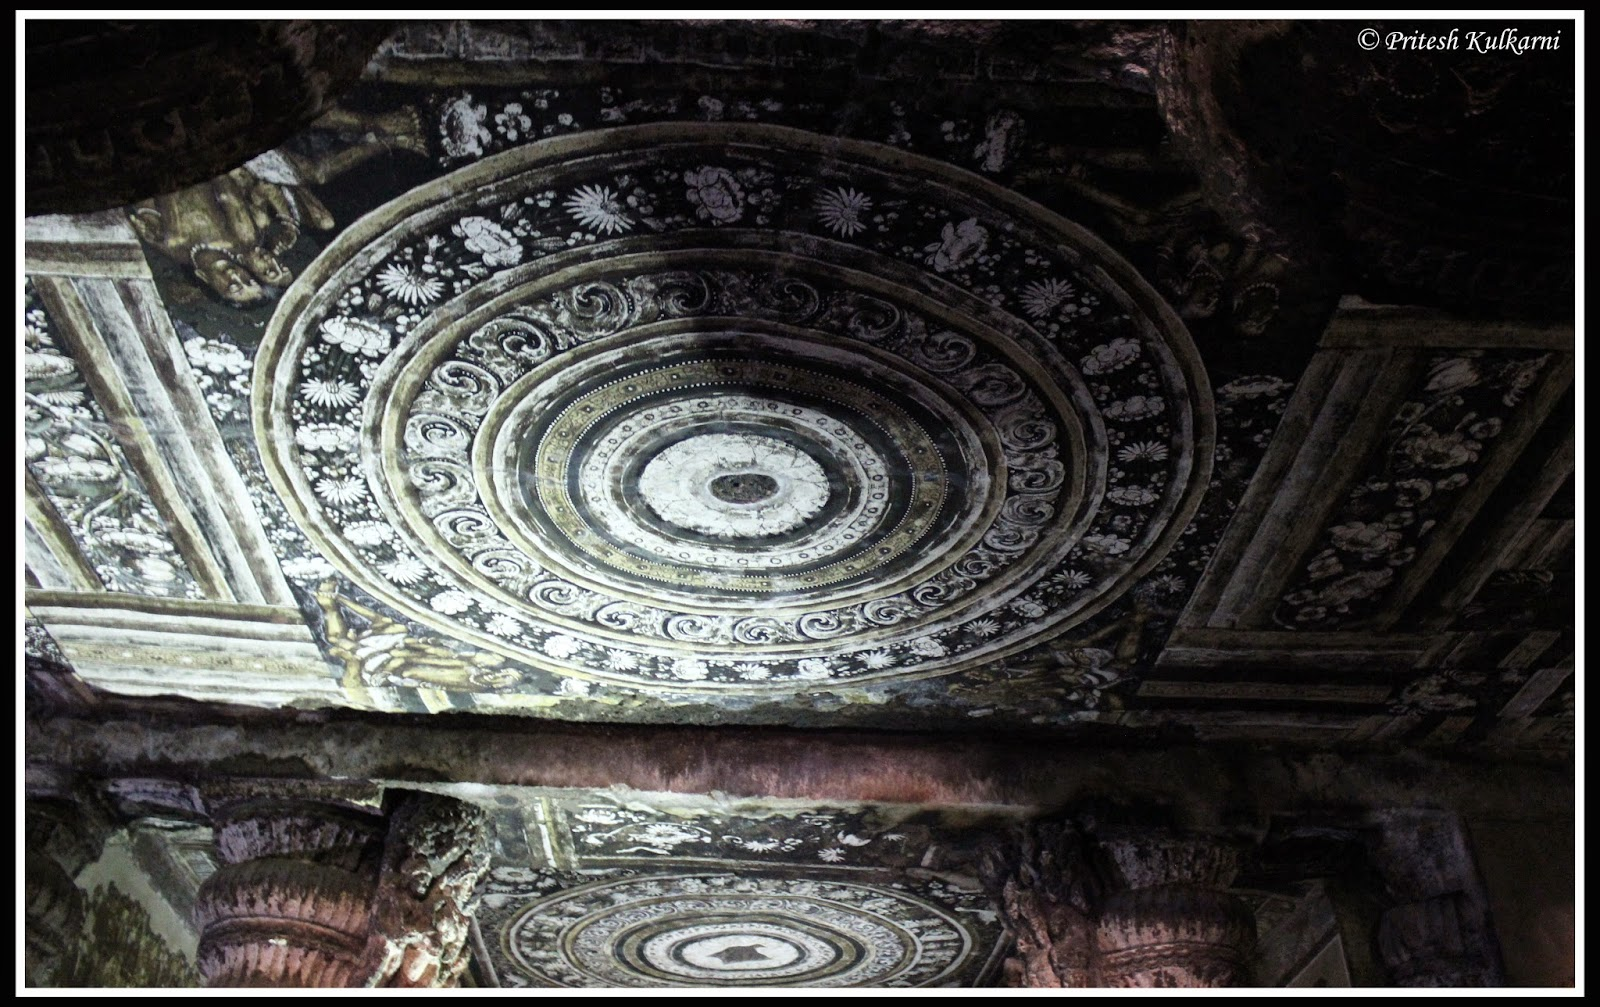 Painting on Ajanta Cave's roof